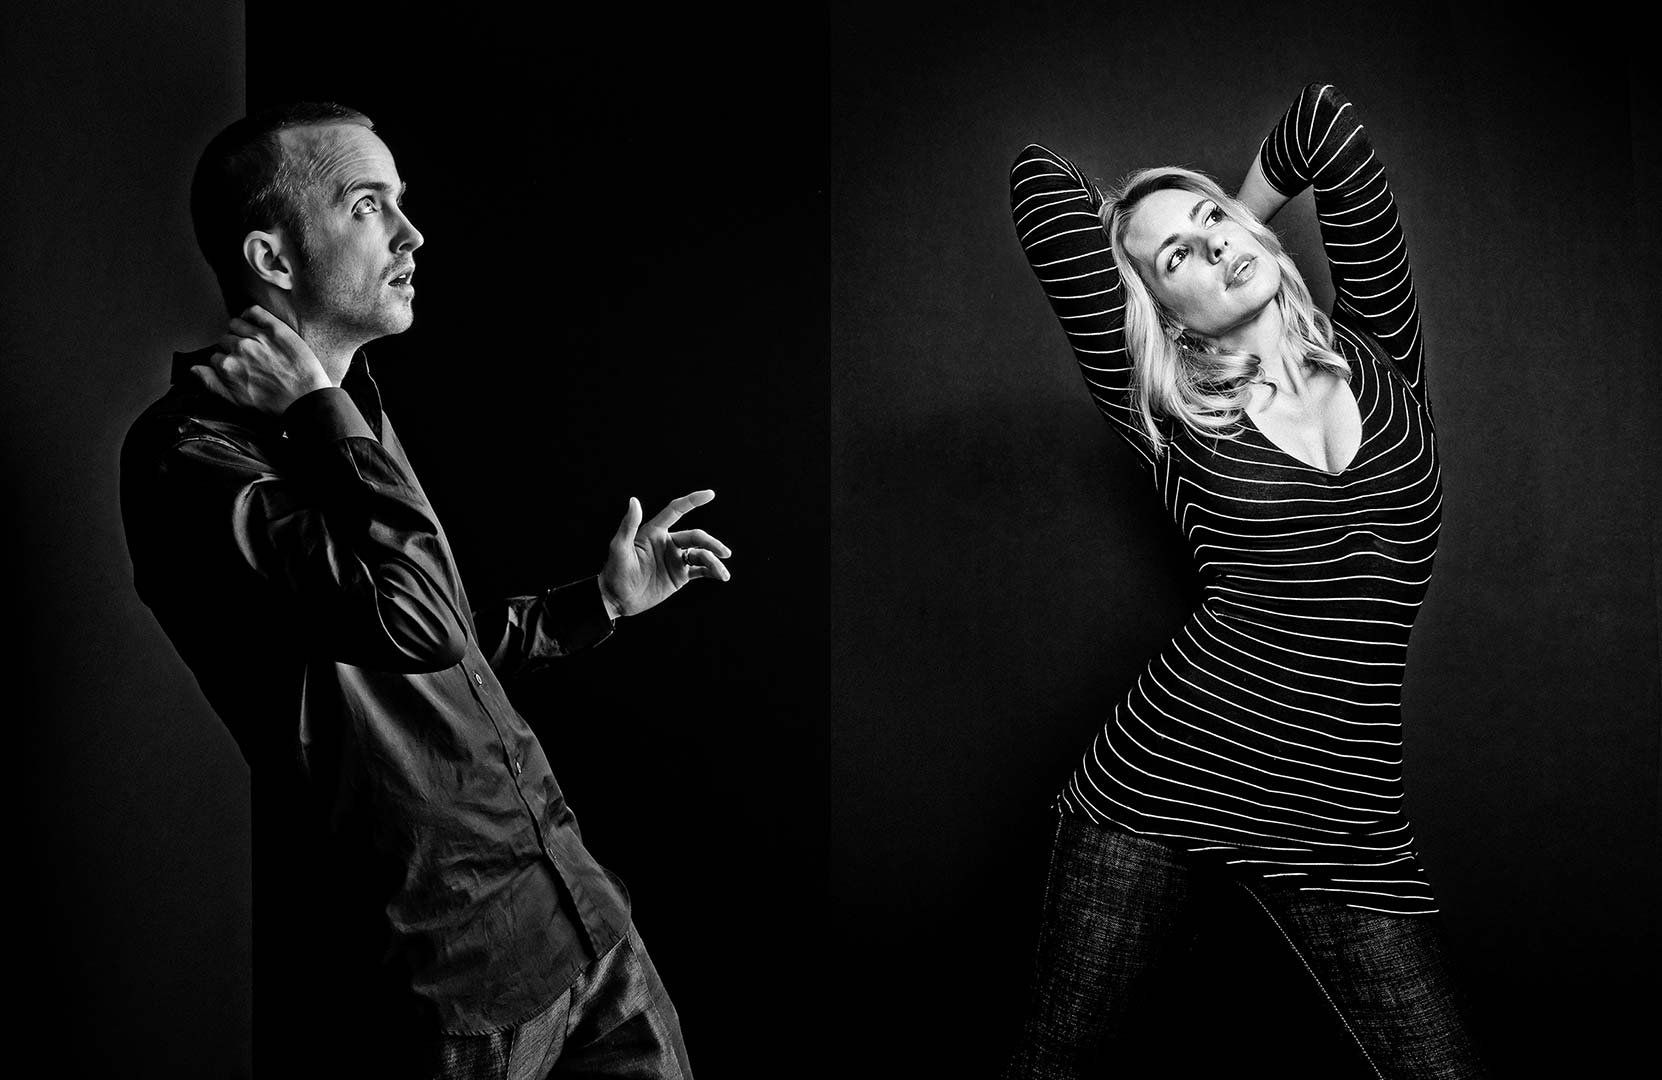 black & white portraits of actors Aaron Paul and Olivia D'Abo